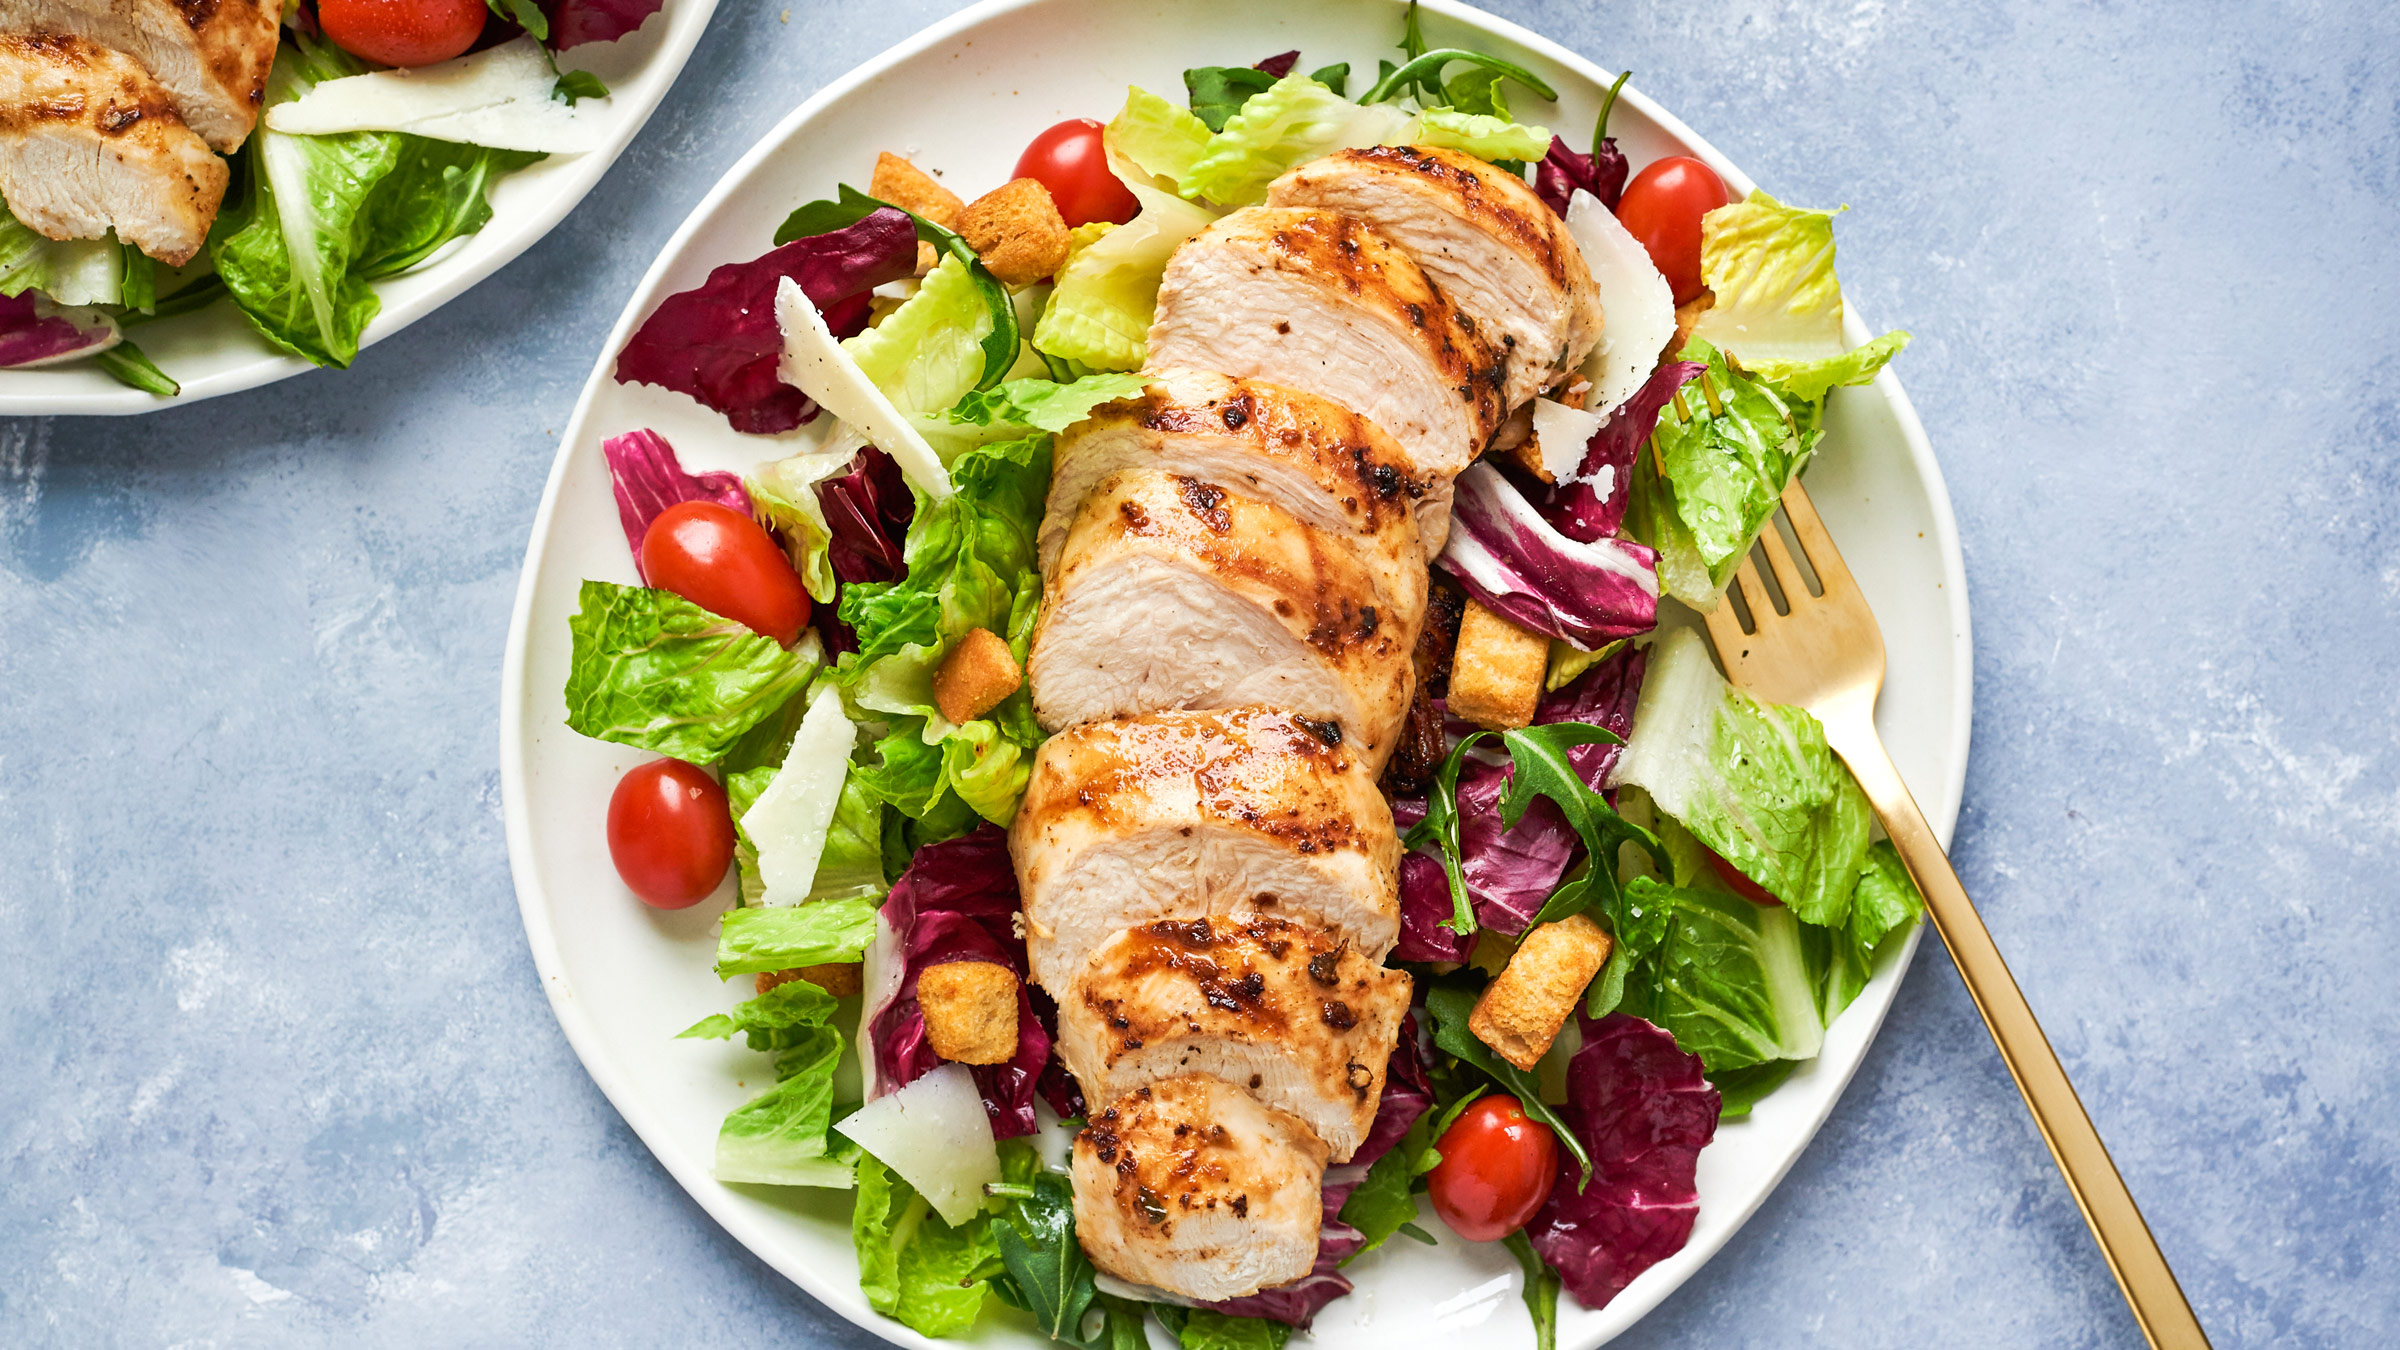 Succulent Grilled Italian Chicken over Greens